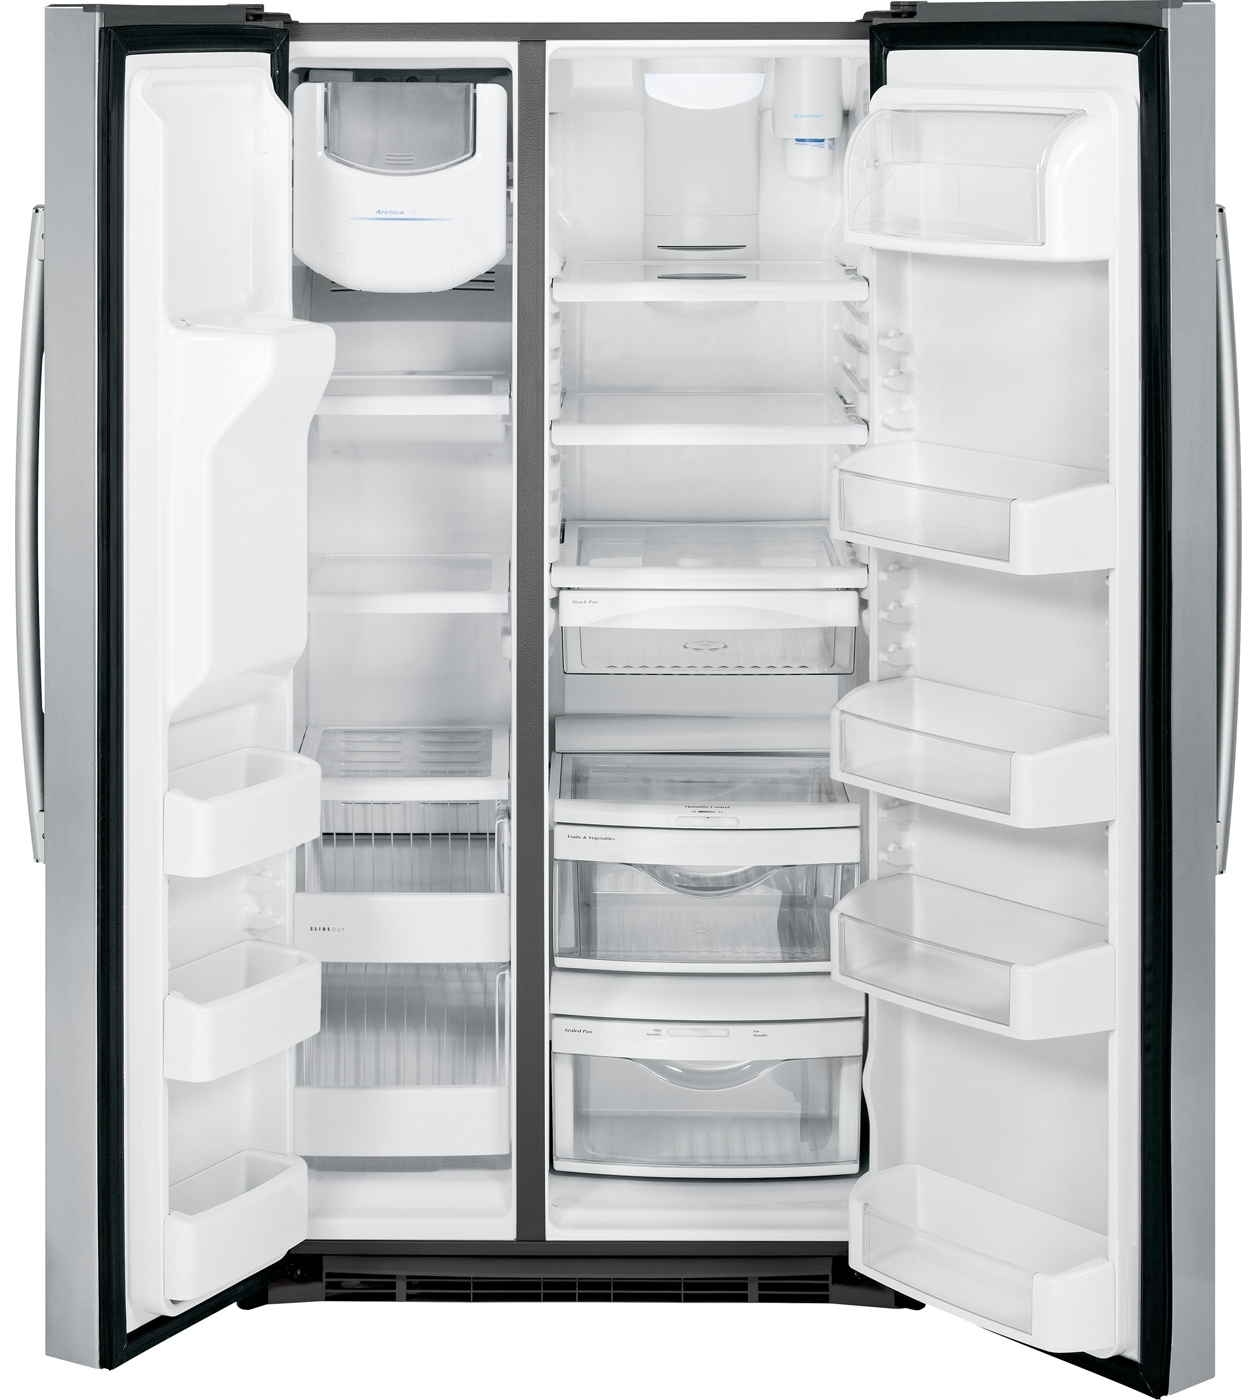 Ge 30 inch side by side white refrigerator - Main Image 1 2 3